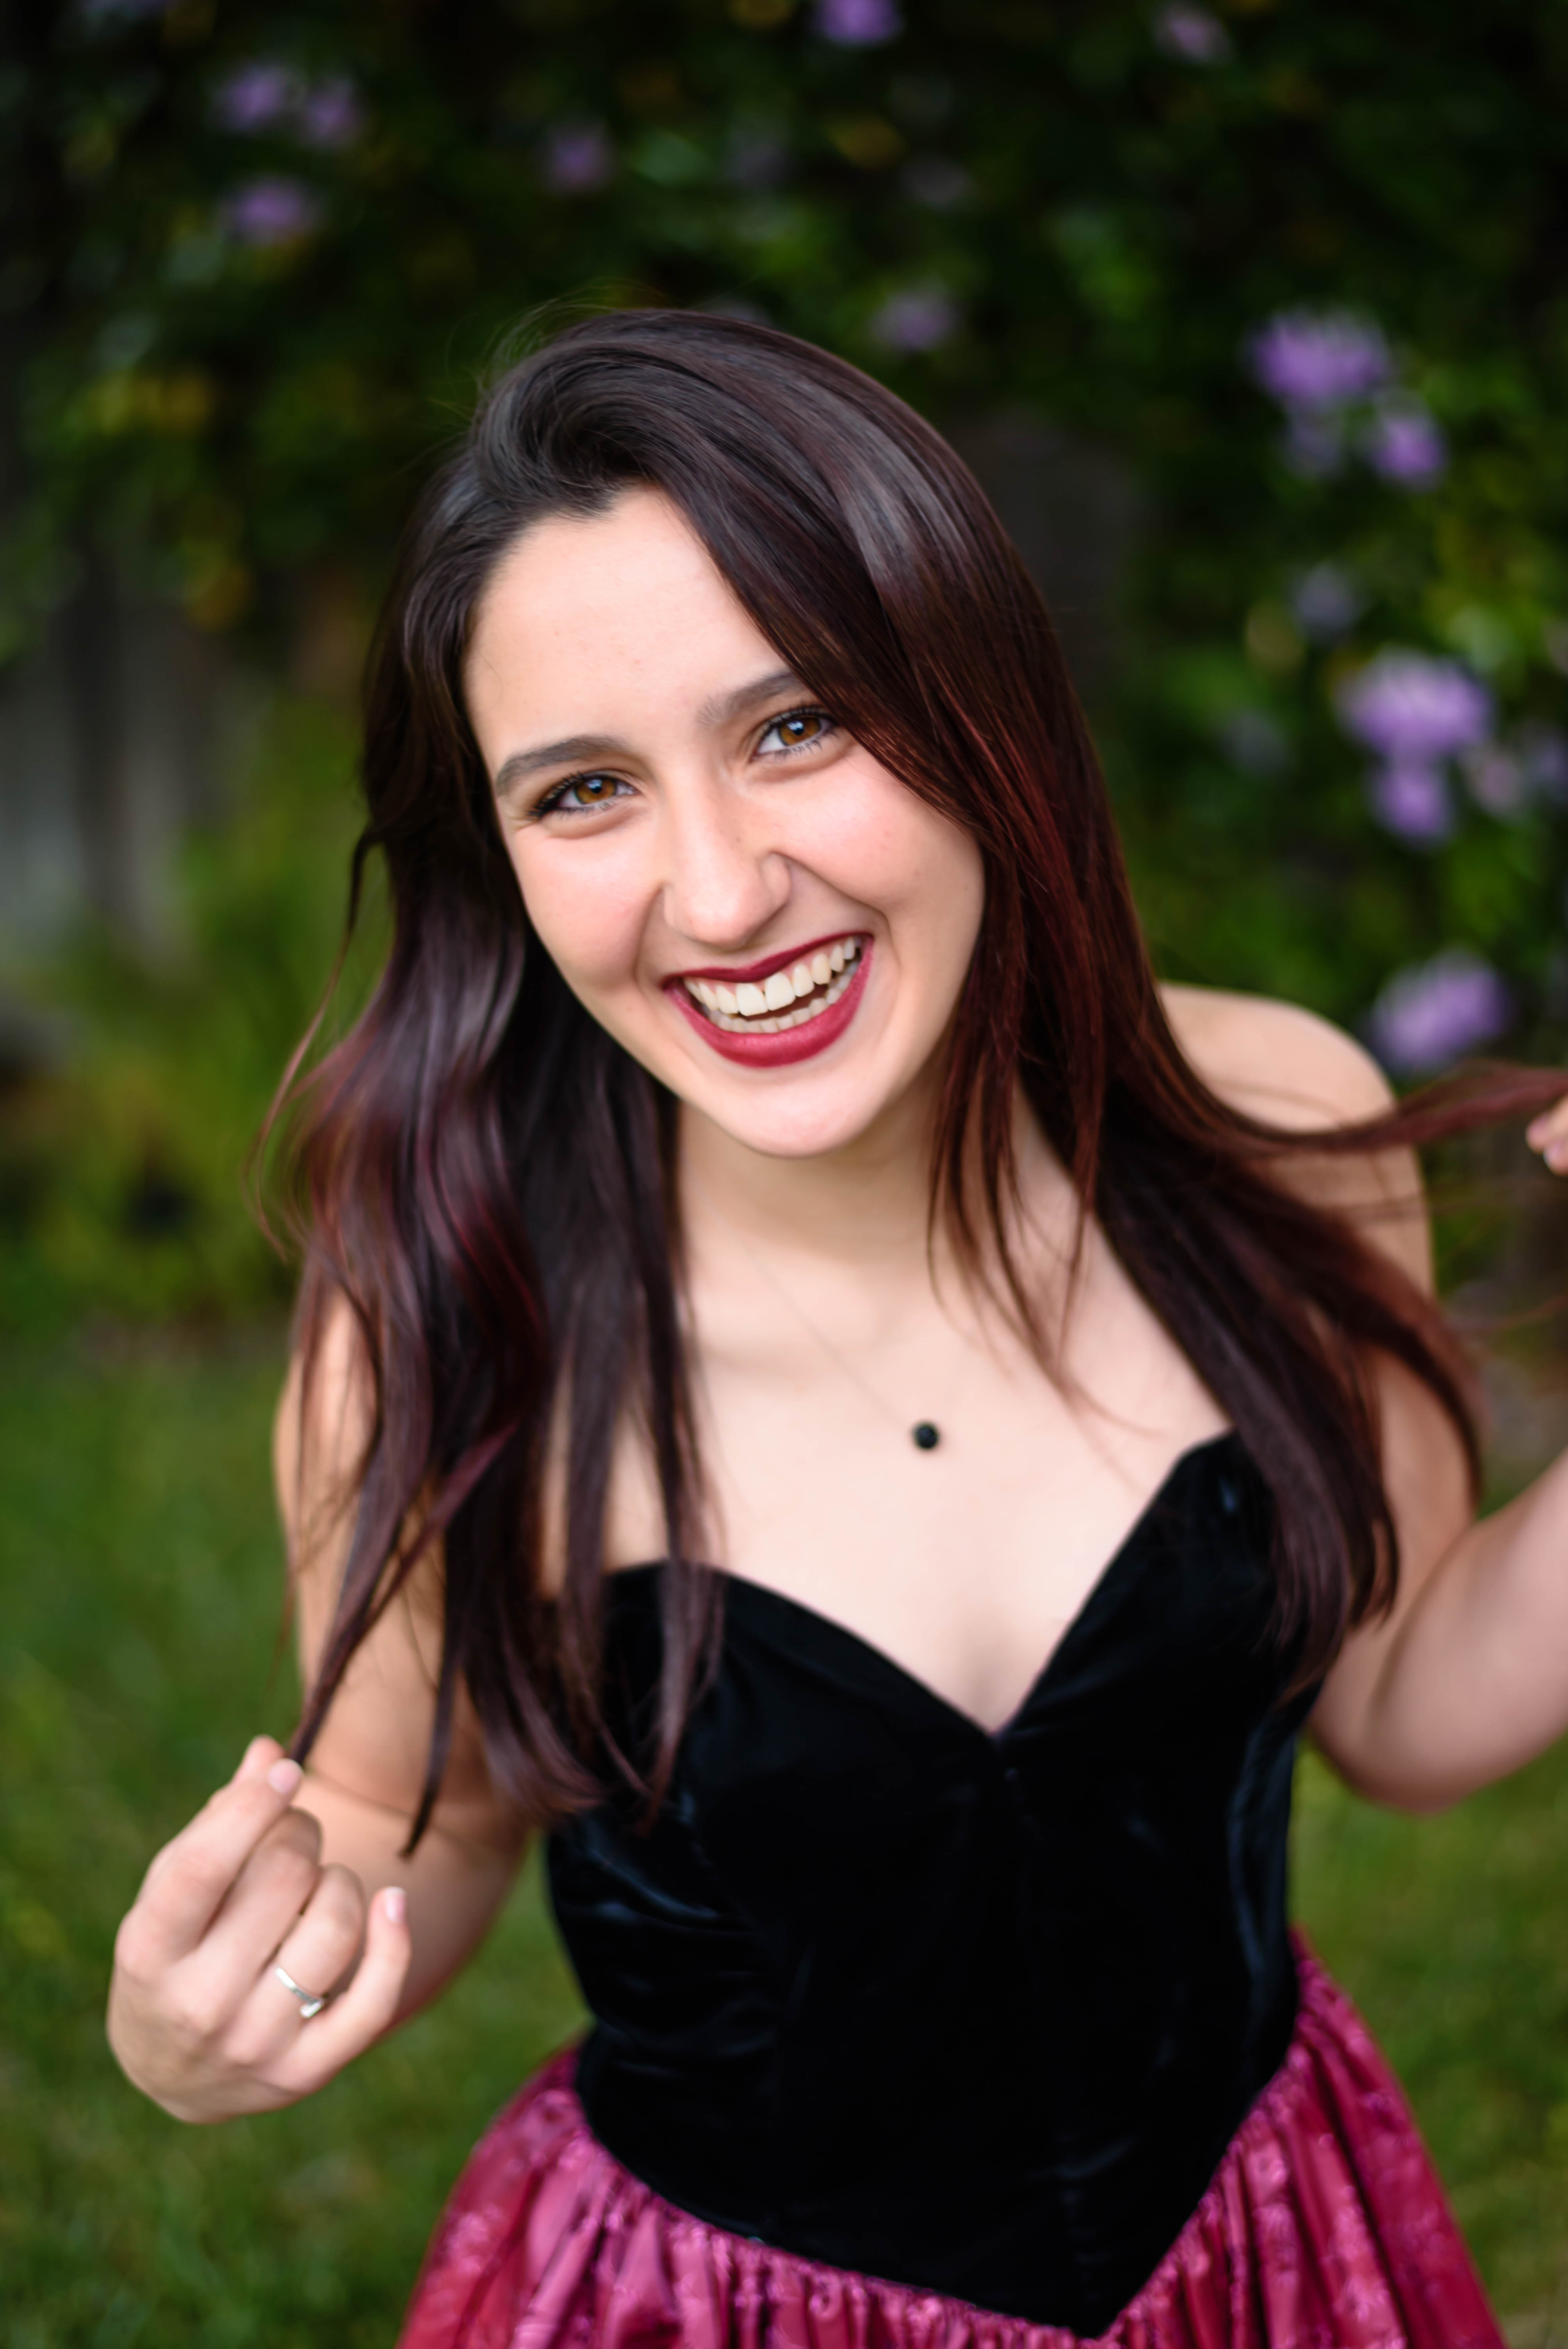 family teen prom graduation photography photographer portraits outdoor brown eyes candid fun hair